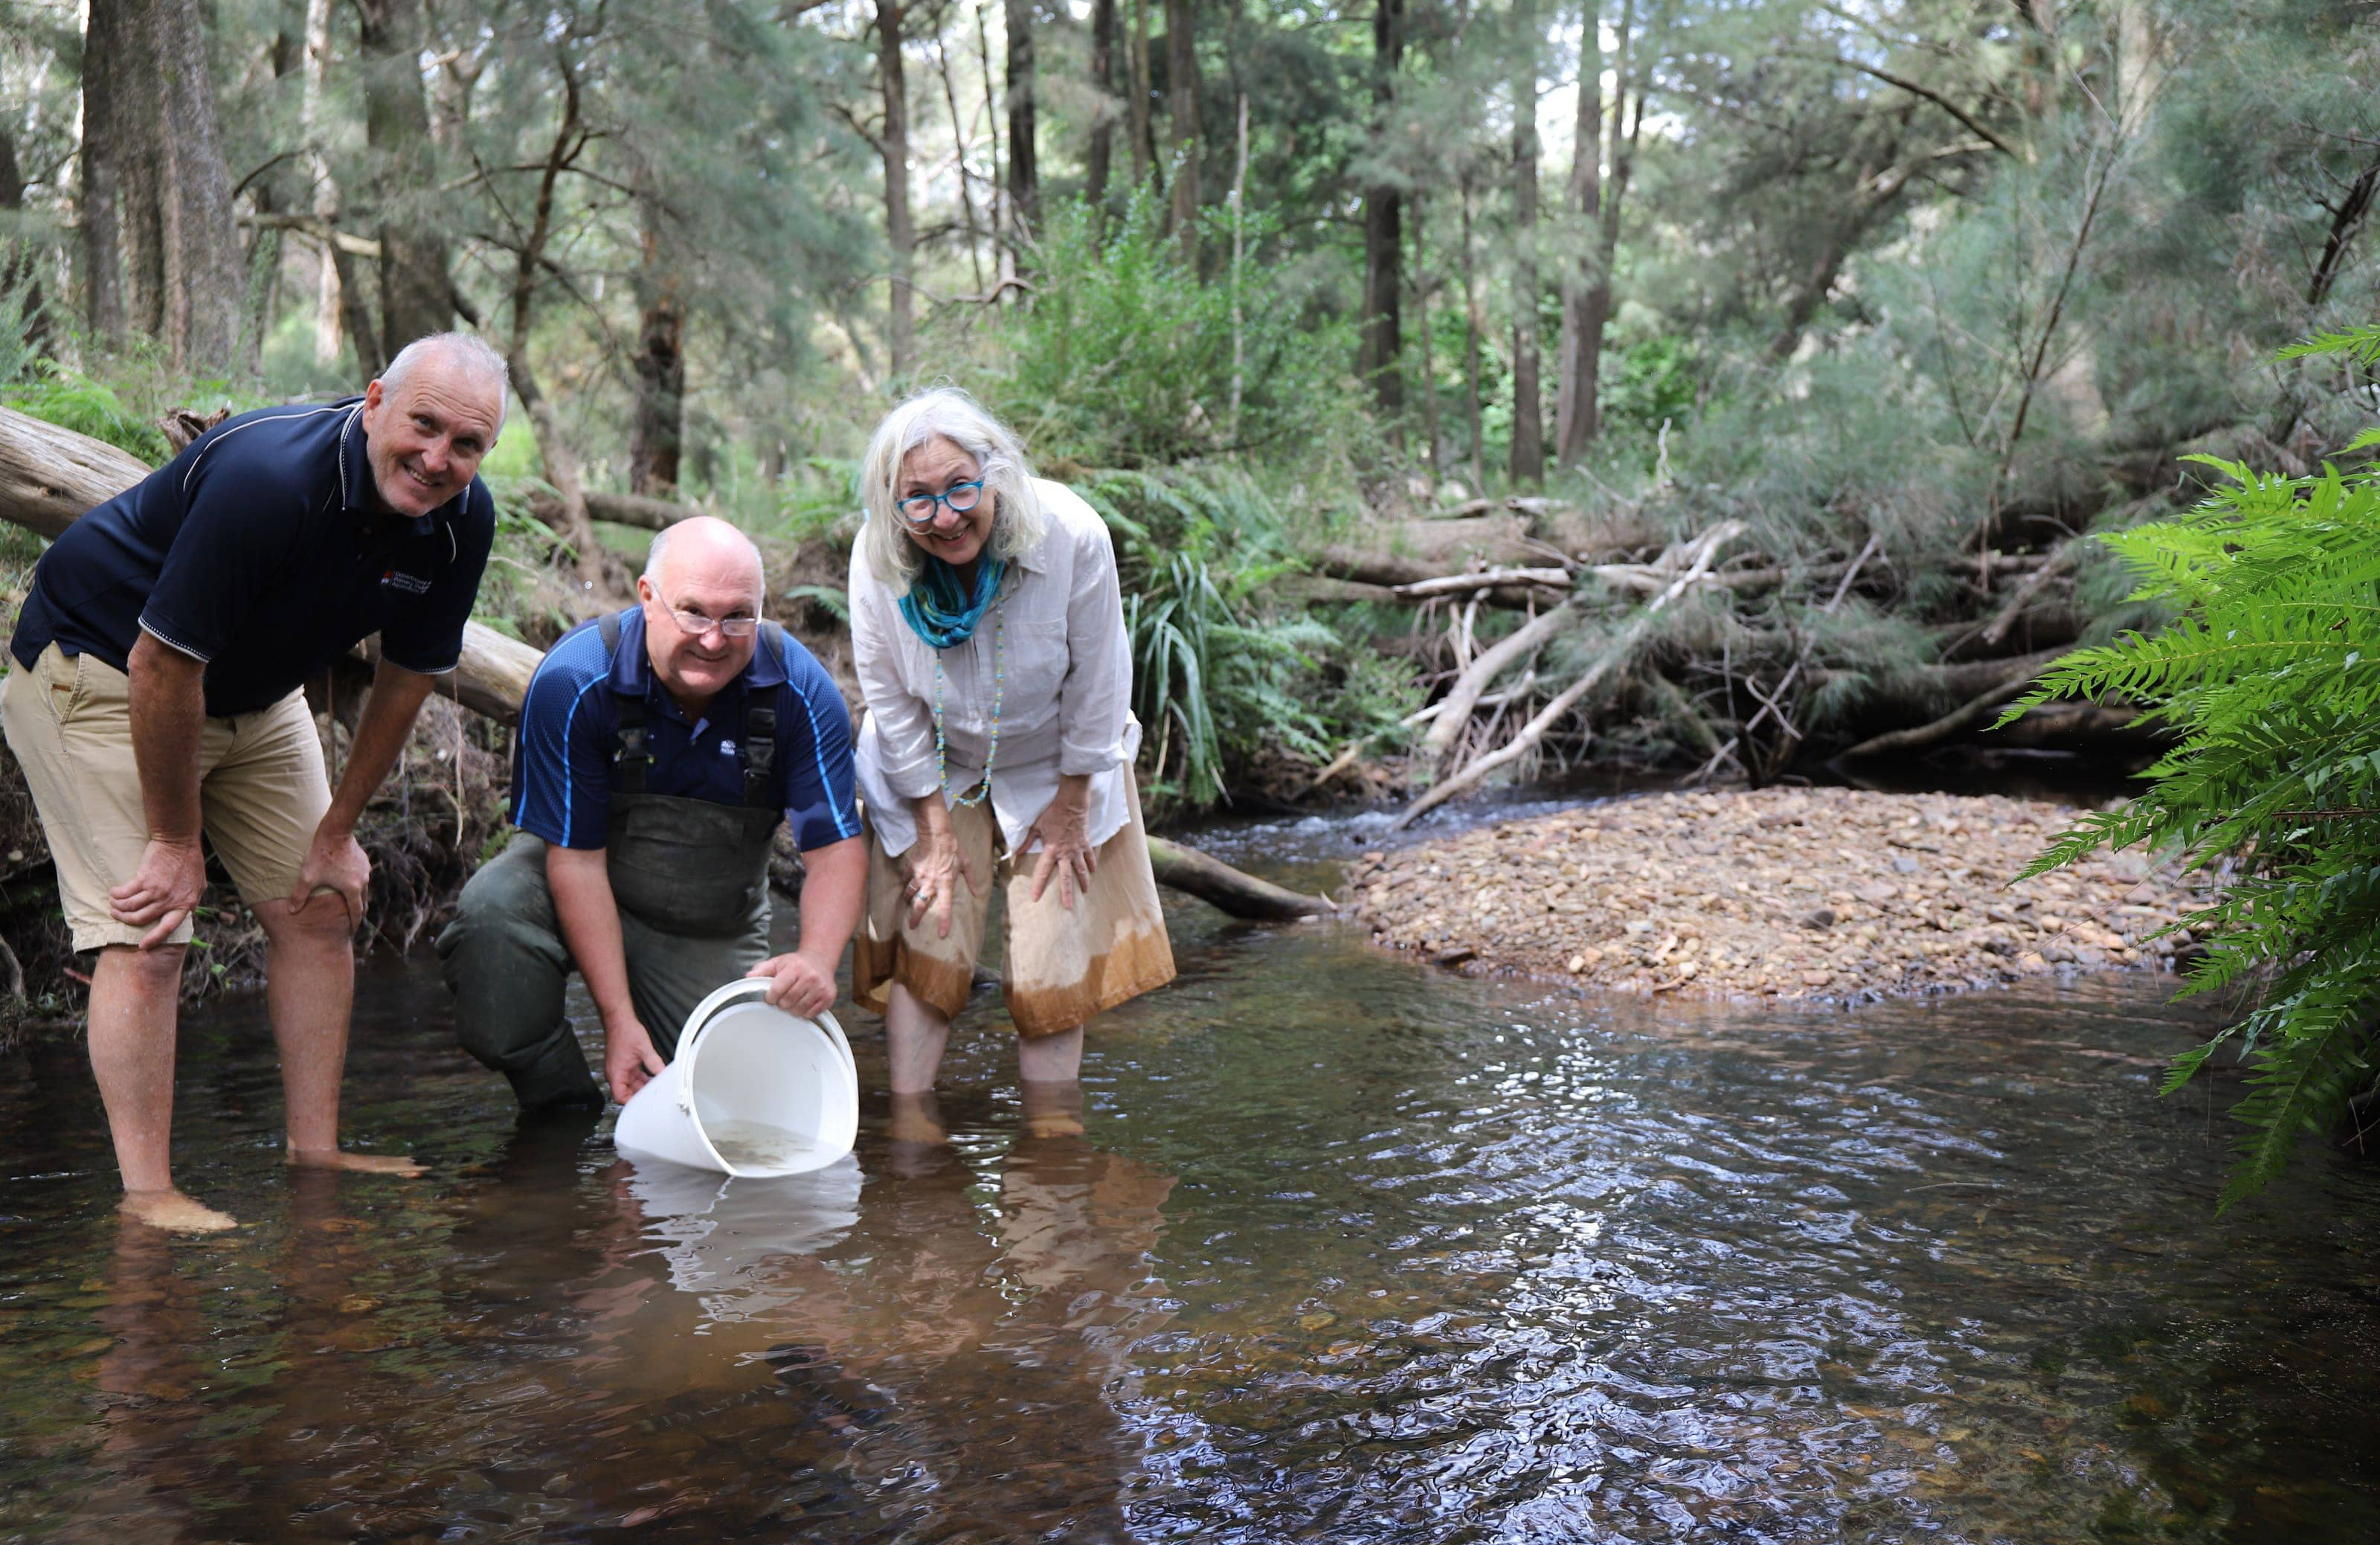 Stewart Fielder, Dean Gilligan and Abagail Elizur releasing Macquarie Perch into the Macquarie River, NSW